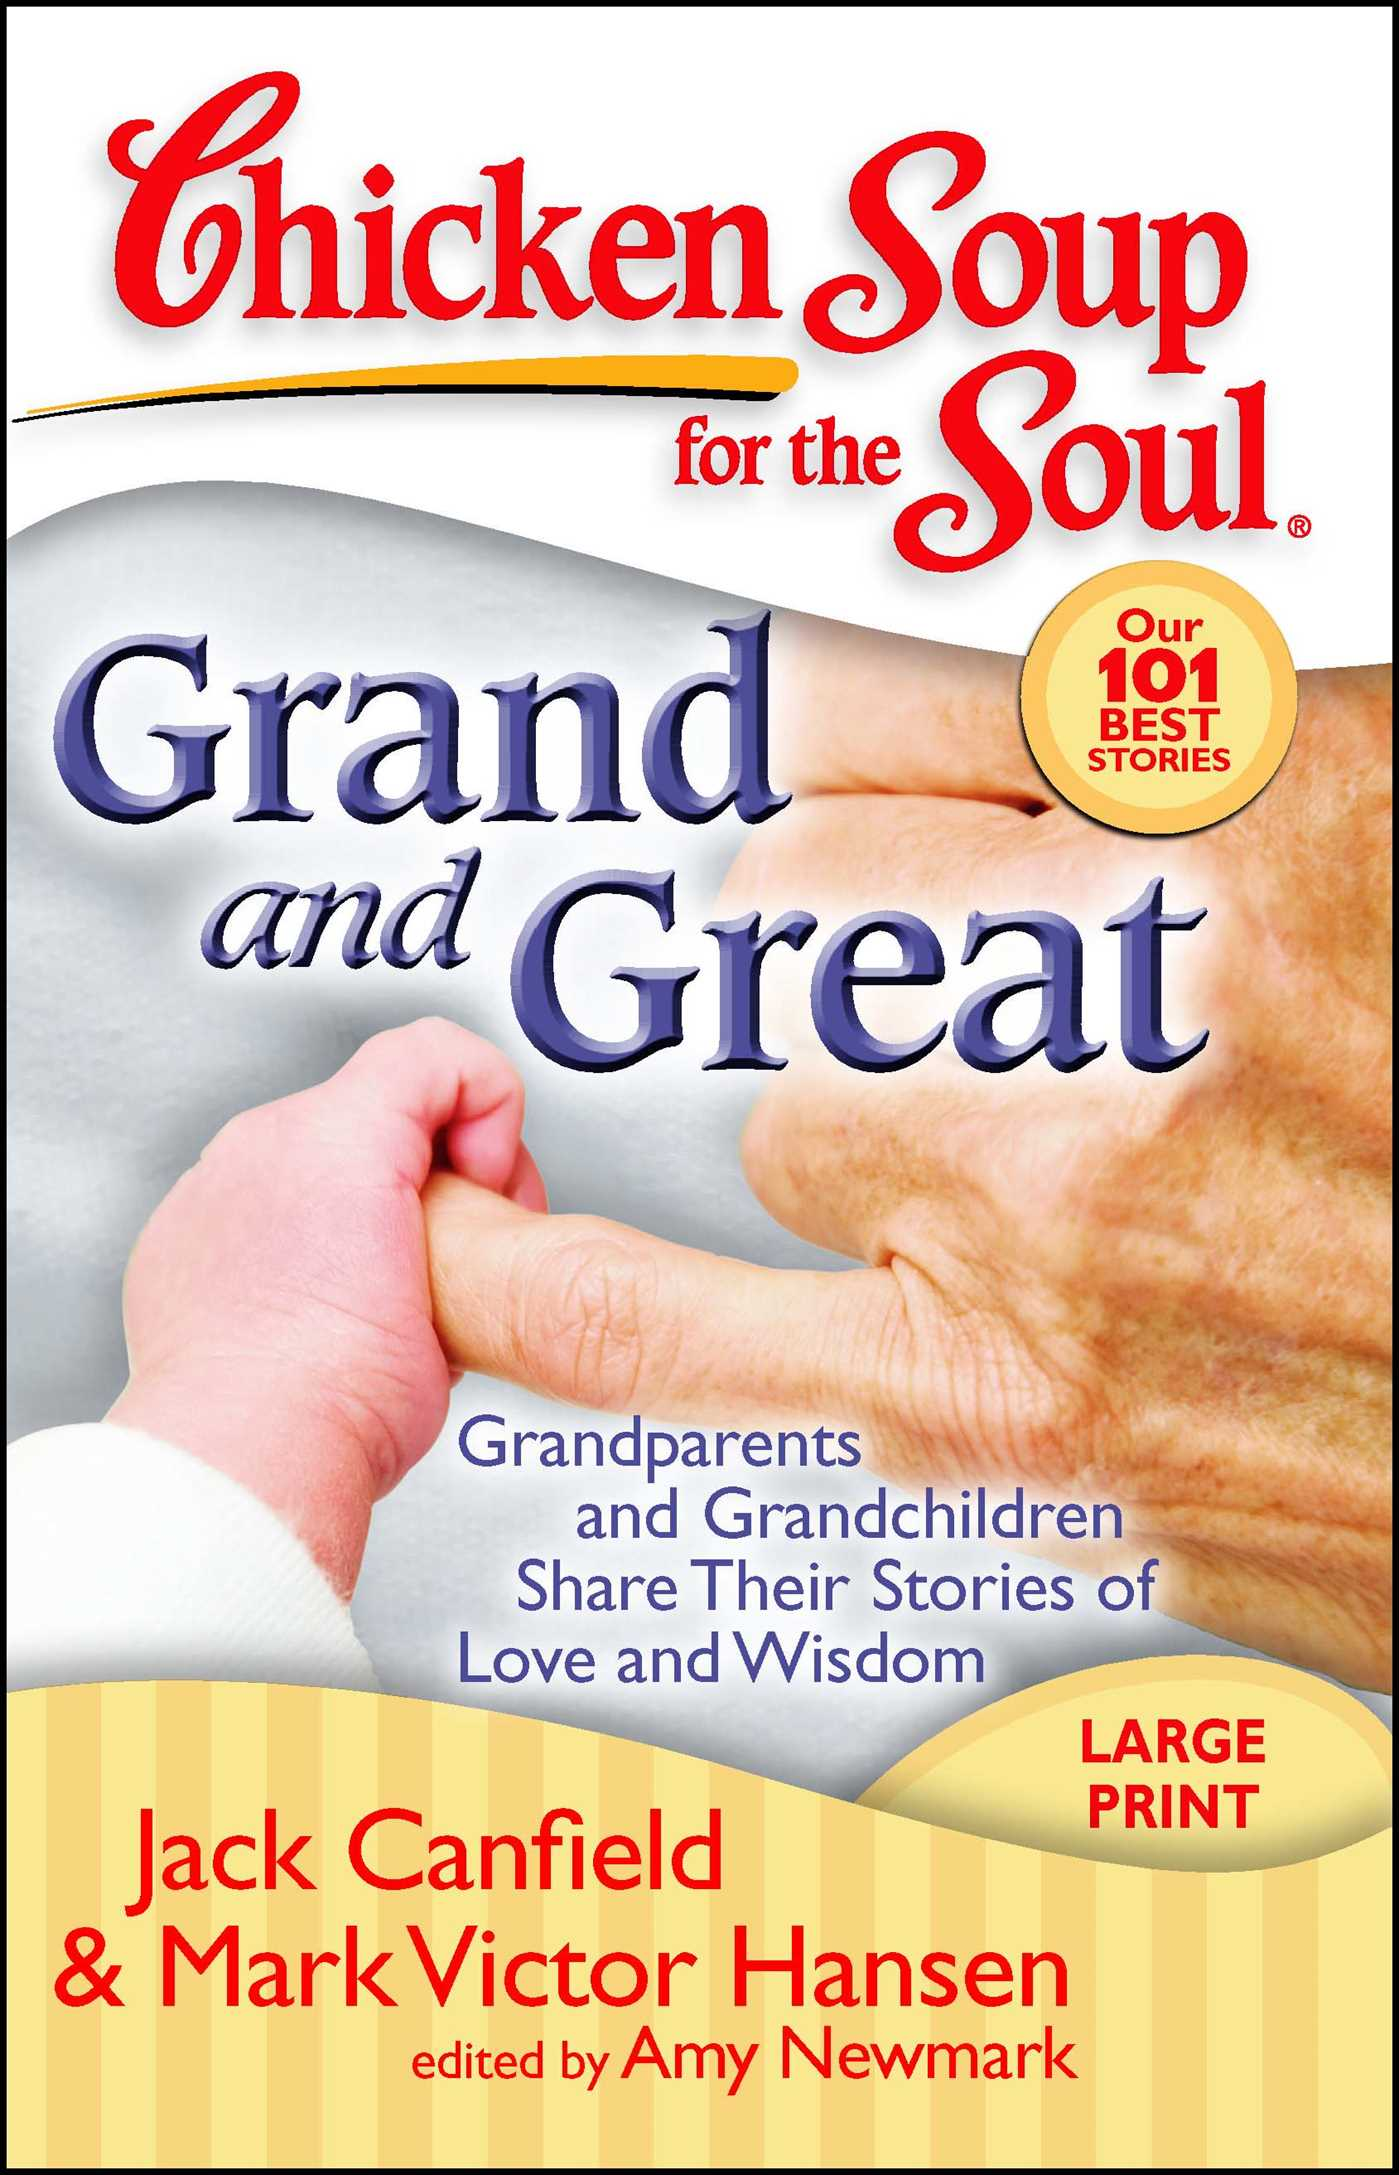 Chicken soup for the soul grand and great 9781935096092 hr